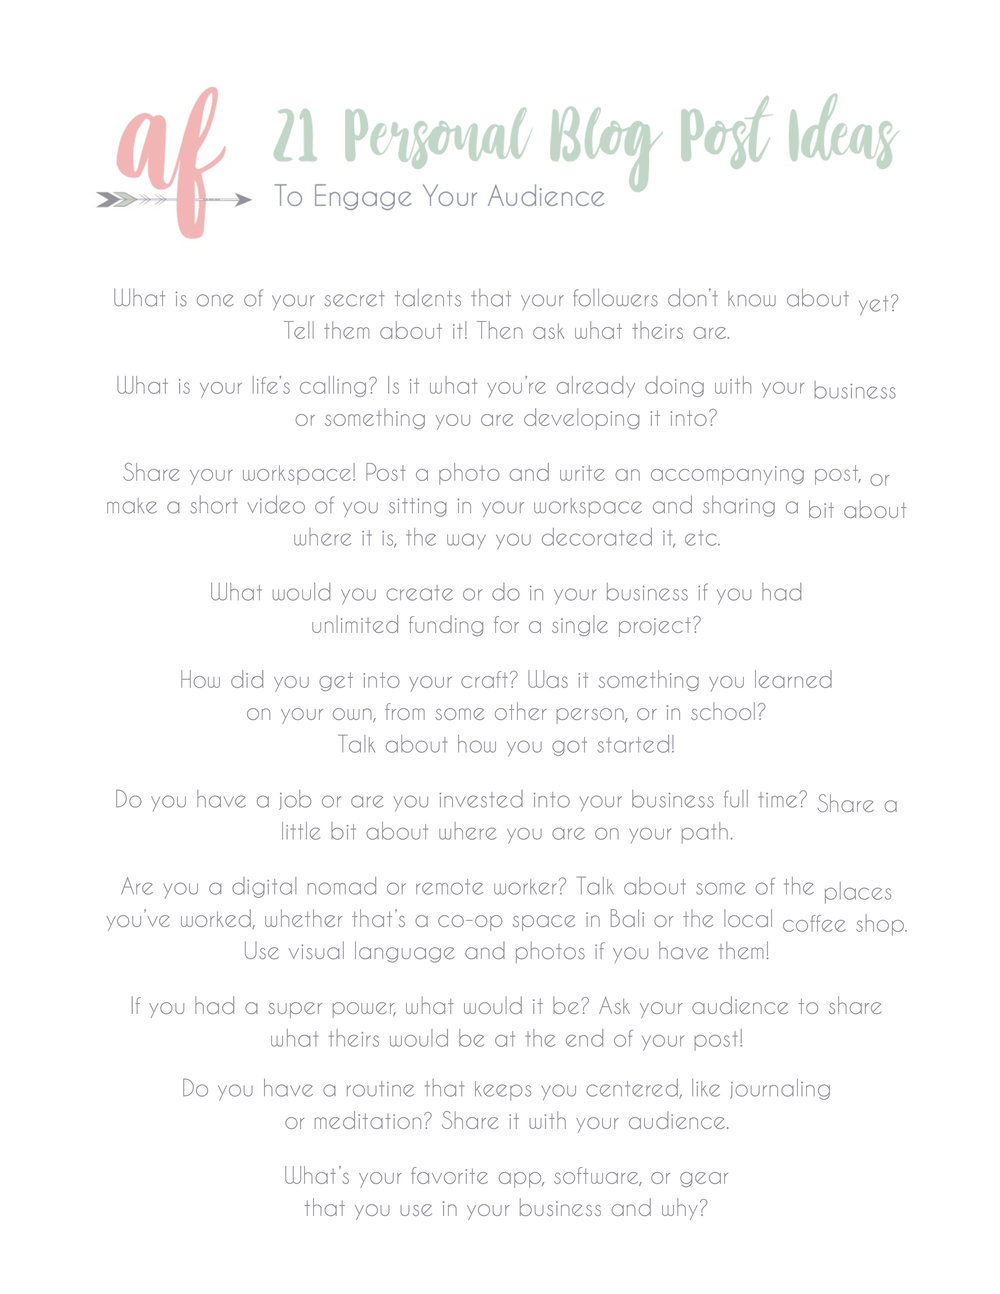 21 Personal Blog Post Ideas Page 1.jpg